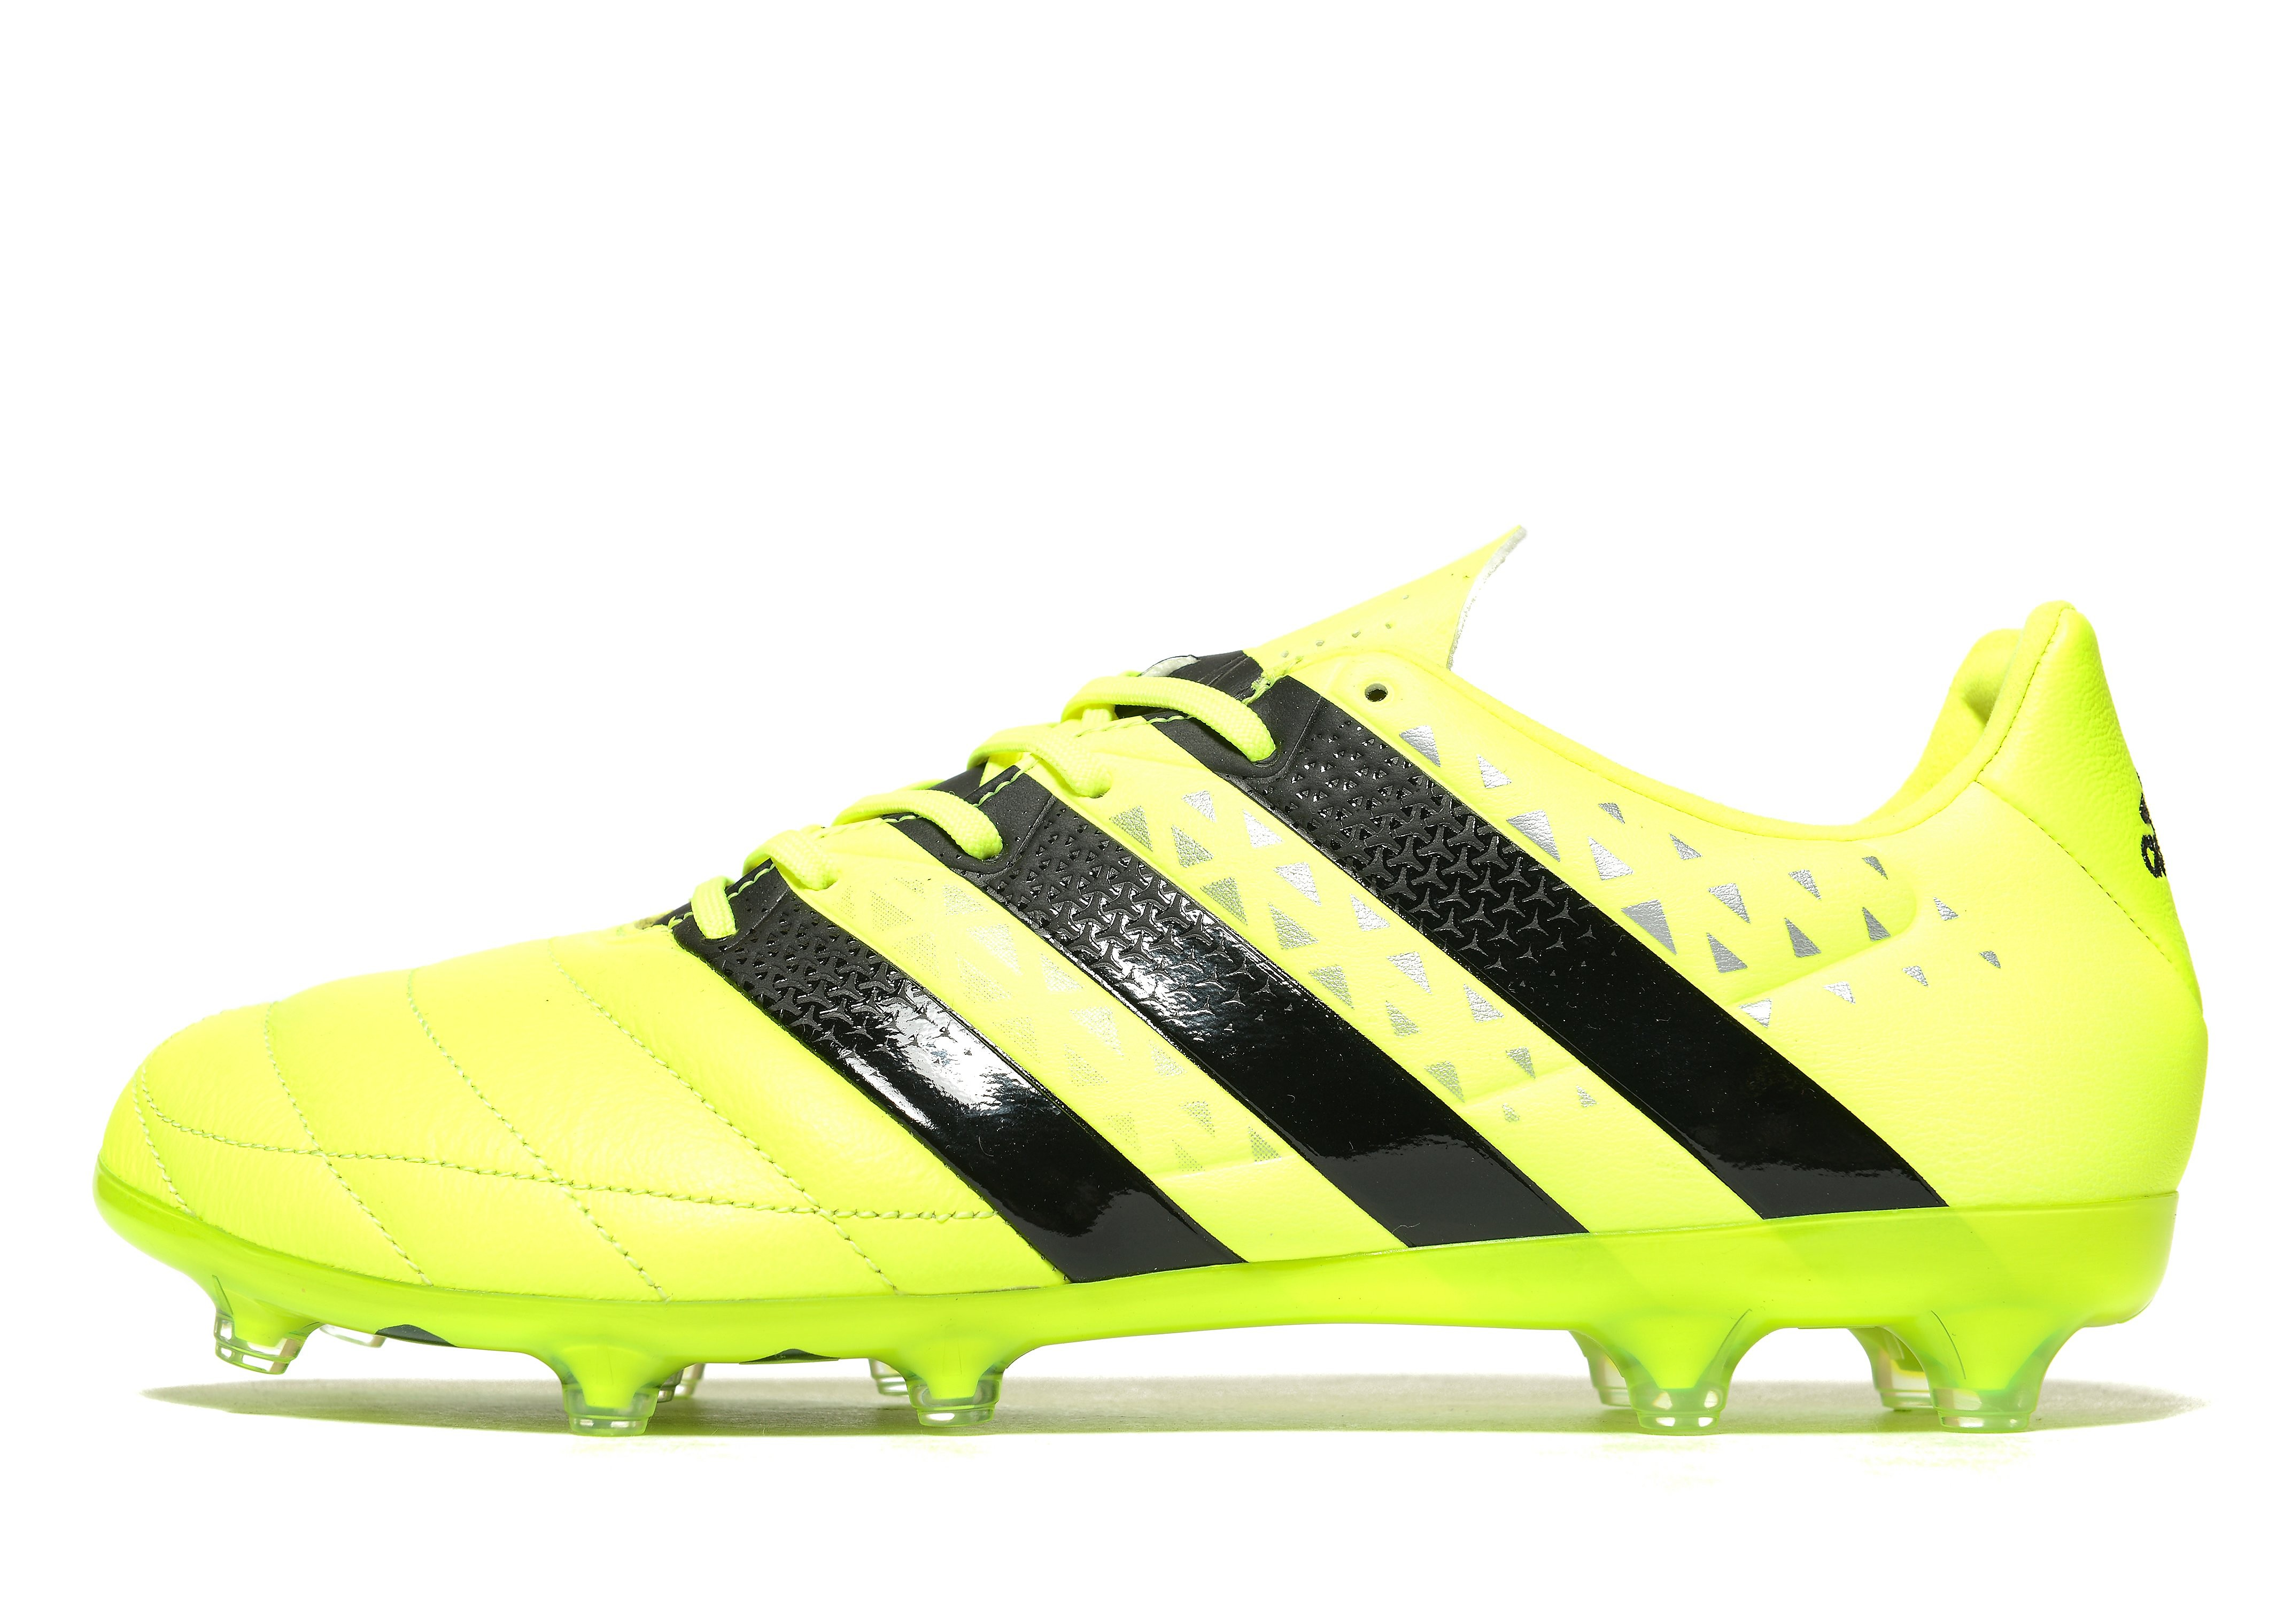 adidas Ace 16.2 Firm Ground Boots